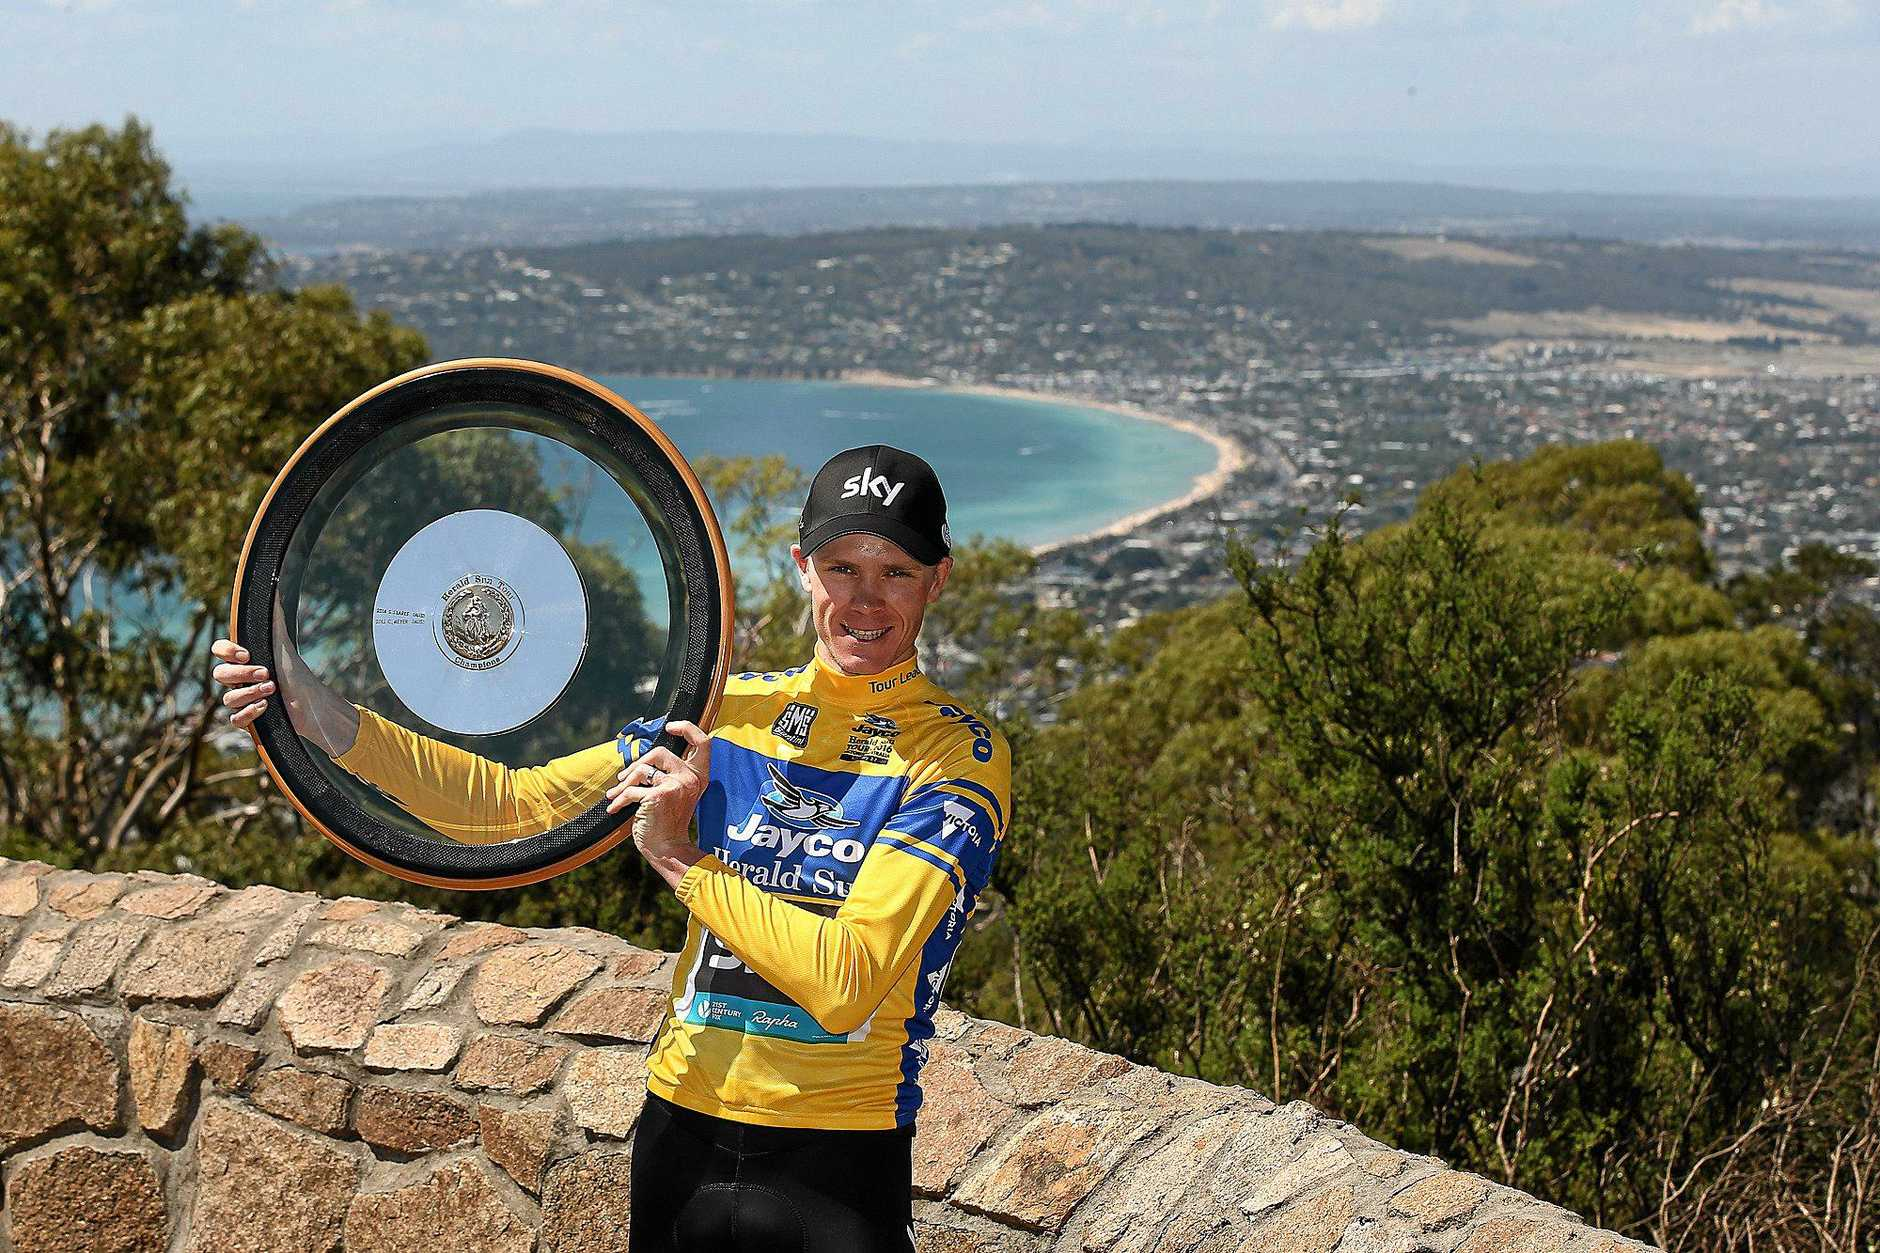 Supplied image of British cyclist Chris Froome posing for a photograph after claiming the stage victory and the Tour title during stage 4 Arthurs Seat Finale of the Jayco Herald Sun Tour in Victoria, Sunday, Feb. 7, 2016. (AAP Image/Herald Sun Tour, Con Chronis) NO ARCHIVNG, EDITORIAL USE ONLY